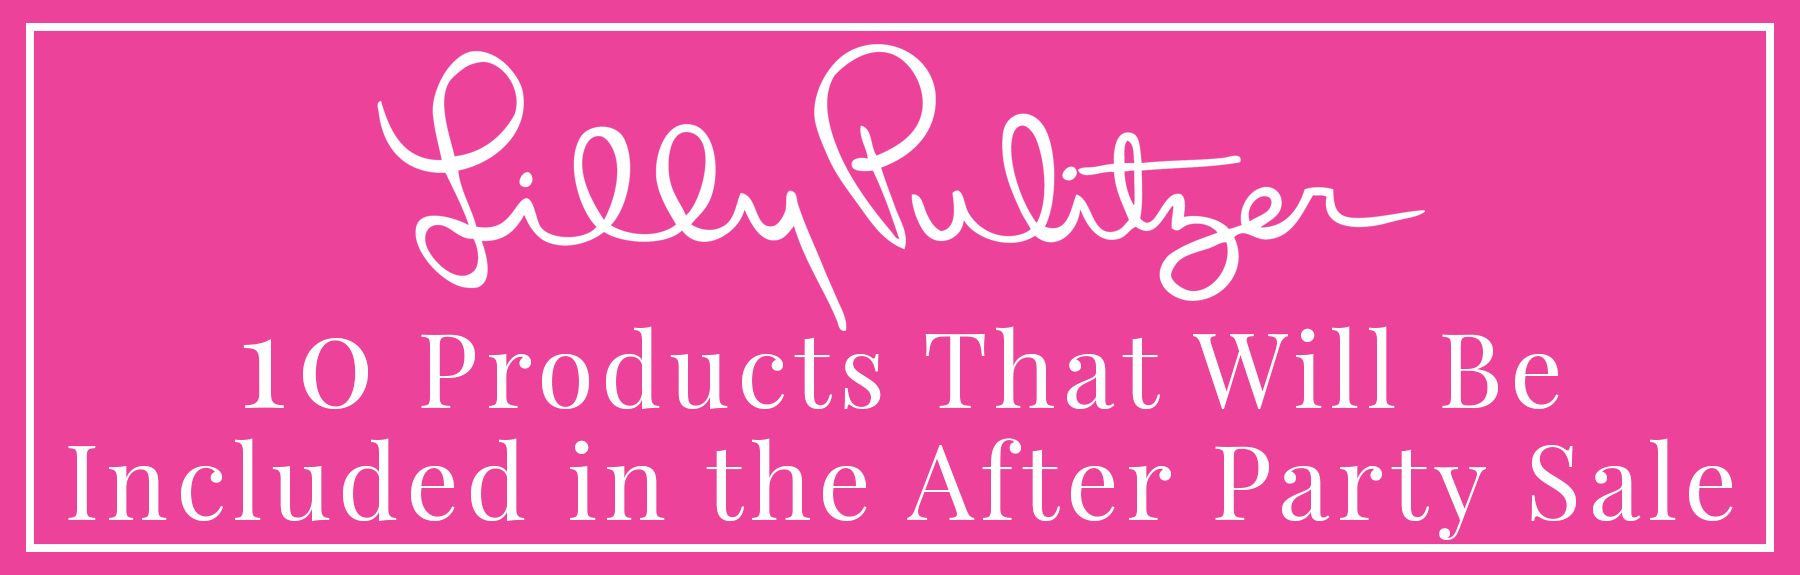 10 Products Included in the Lilly Pulitzer After Party Sale